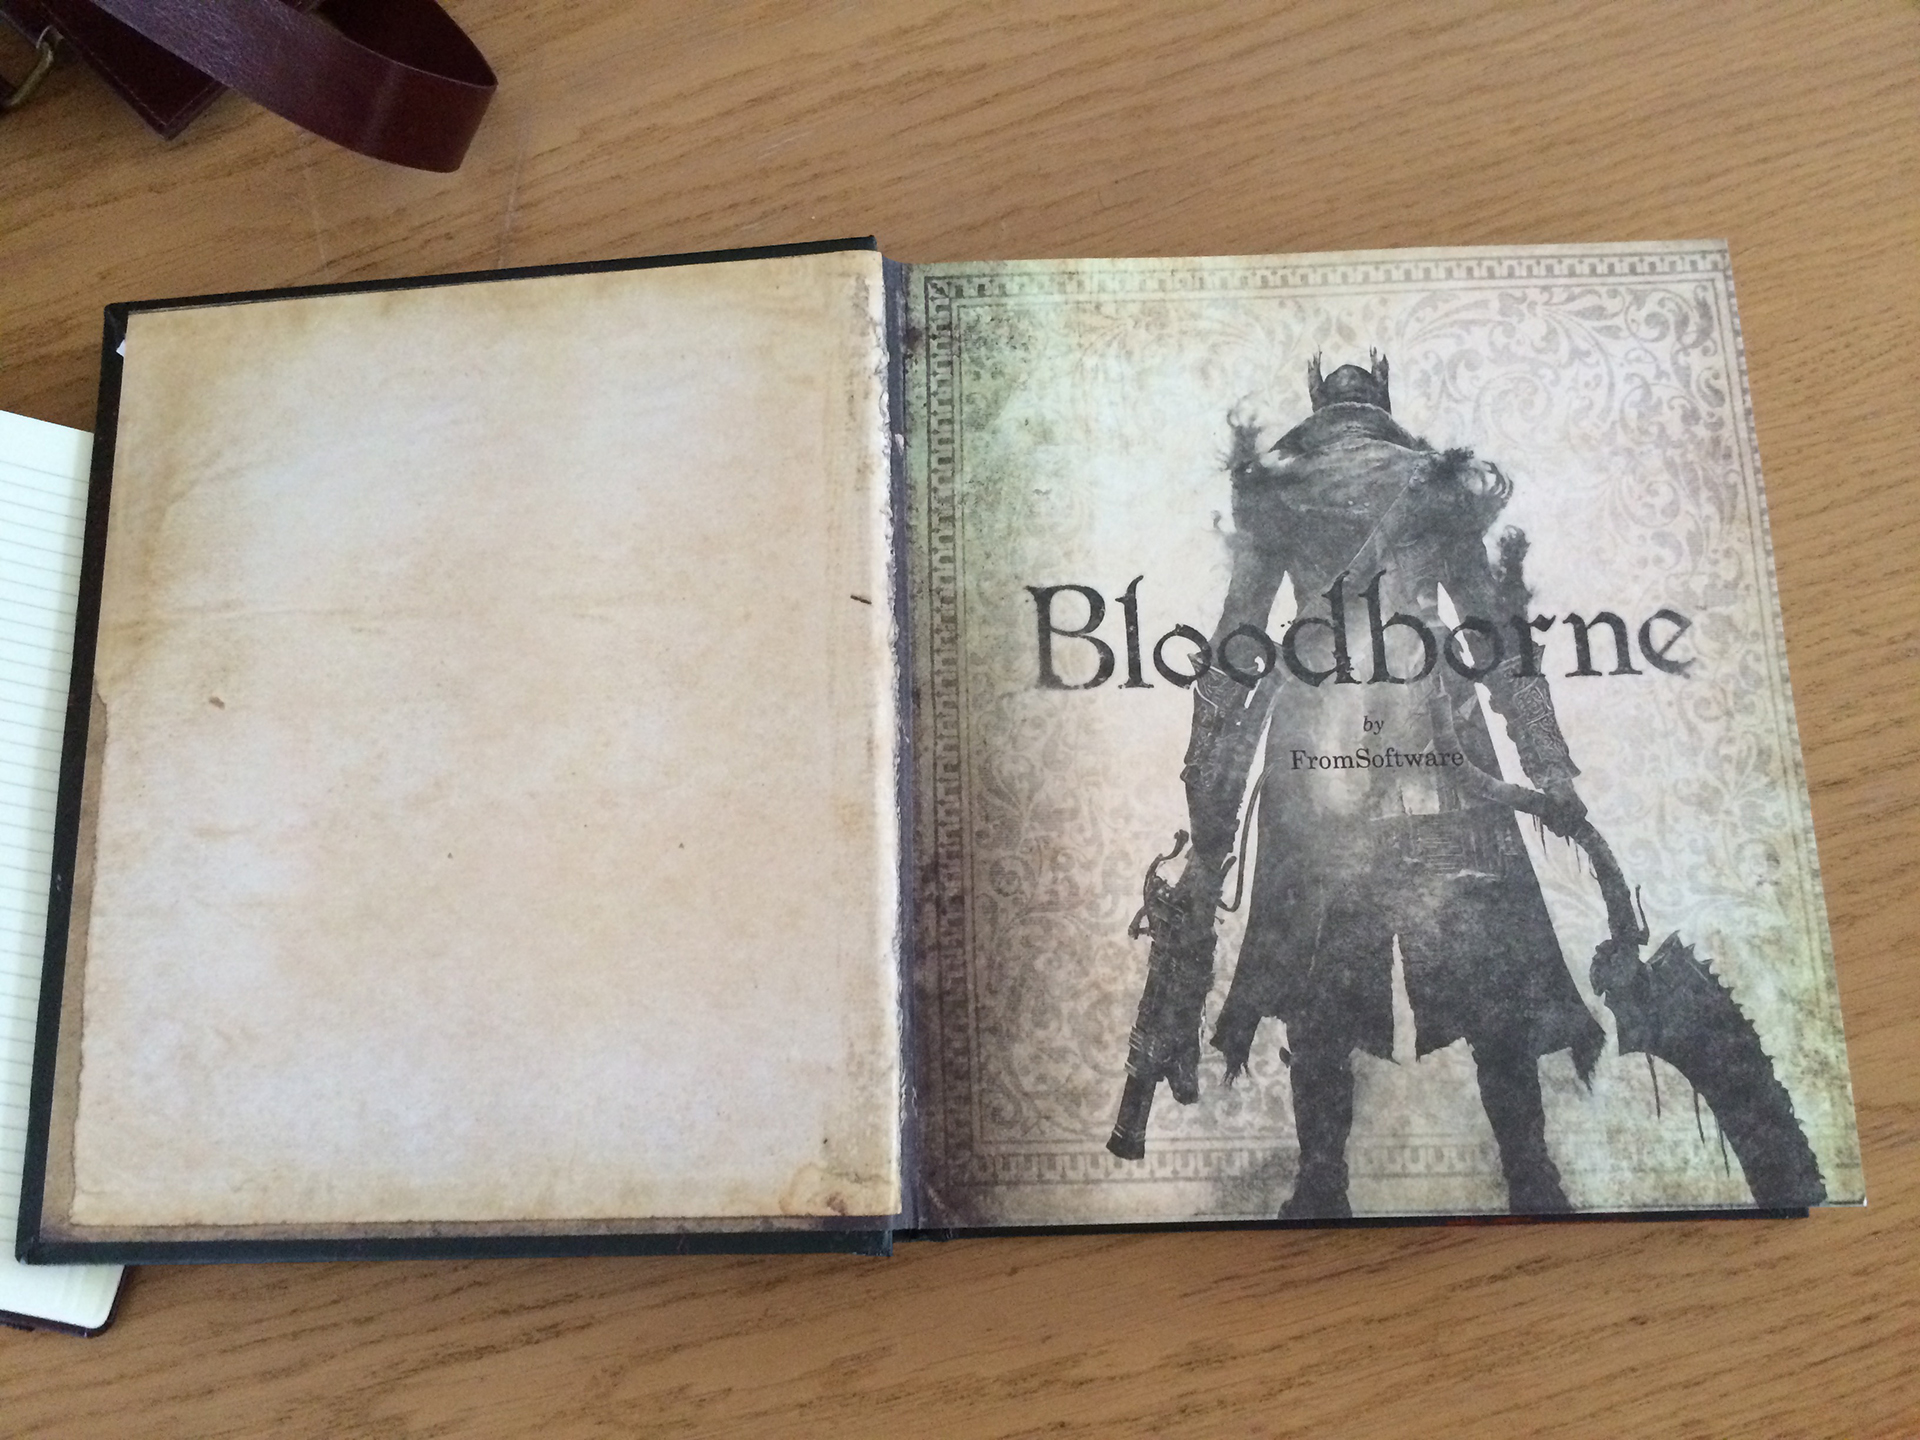 Bloodborne Press Kit